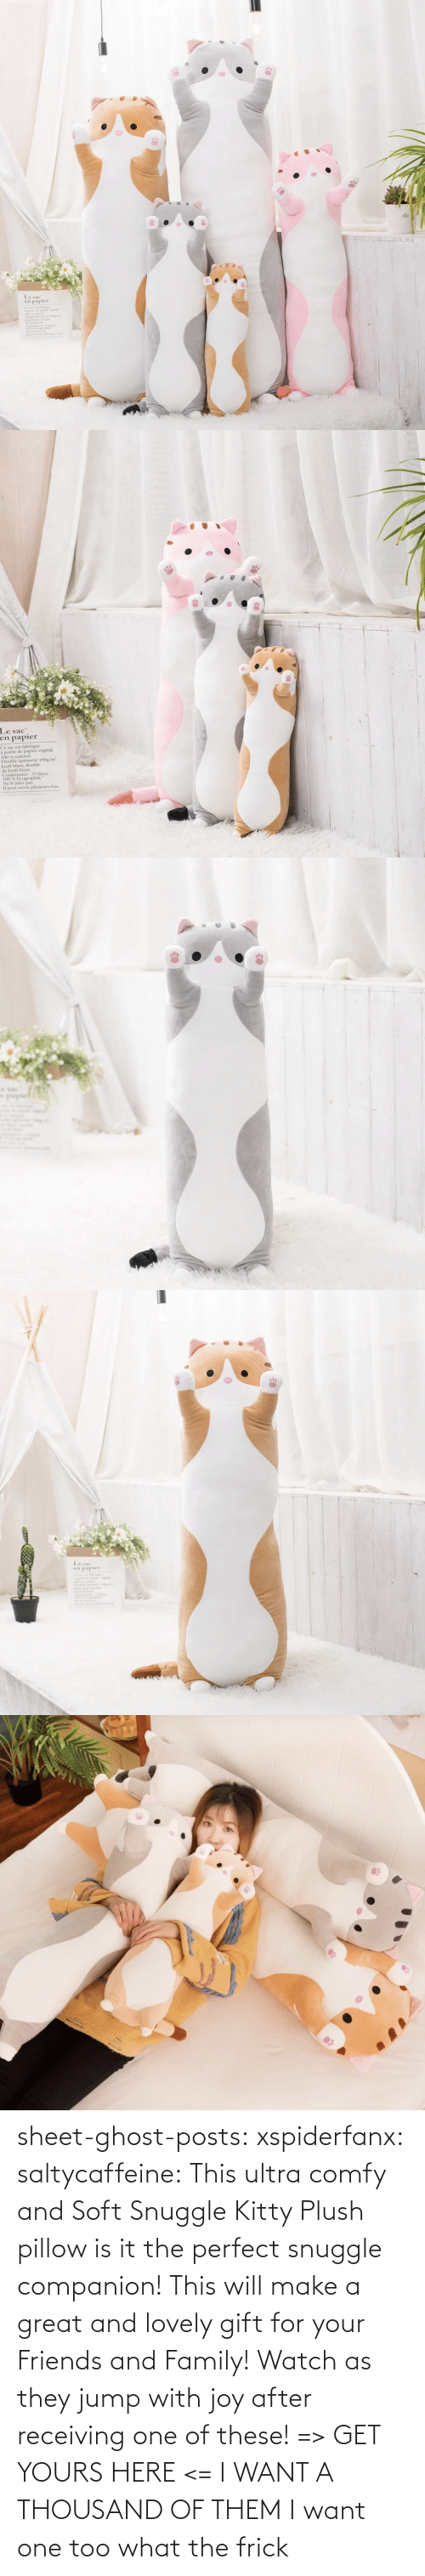 One Of These: sheet-ghost-posts: xspiderfanx:  saltycaffeine:  This ultra comfy and Soft Snuggle Kitty Plush pillow is it the perfect snuggle companion! This will make a great and lovely gift for your Friends and Family! Watch as they jump with joy after receiving one of these! => GET YOURS HERE <=    I WANT A THOUSAND OF THEM  I want one too what the frick